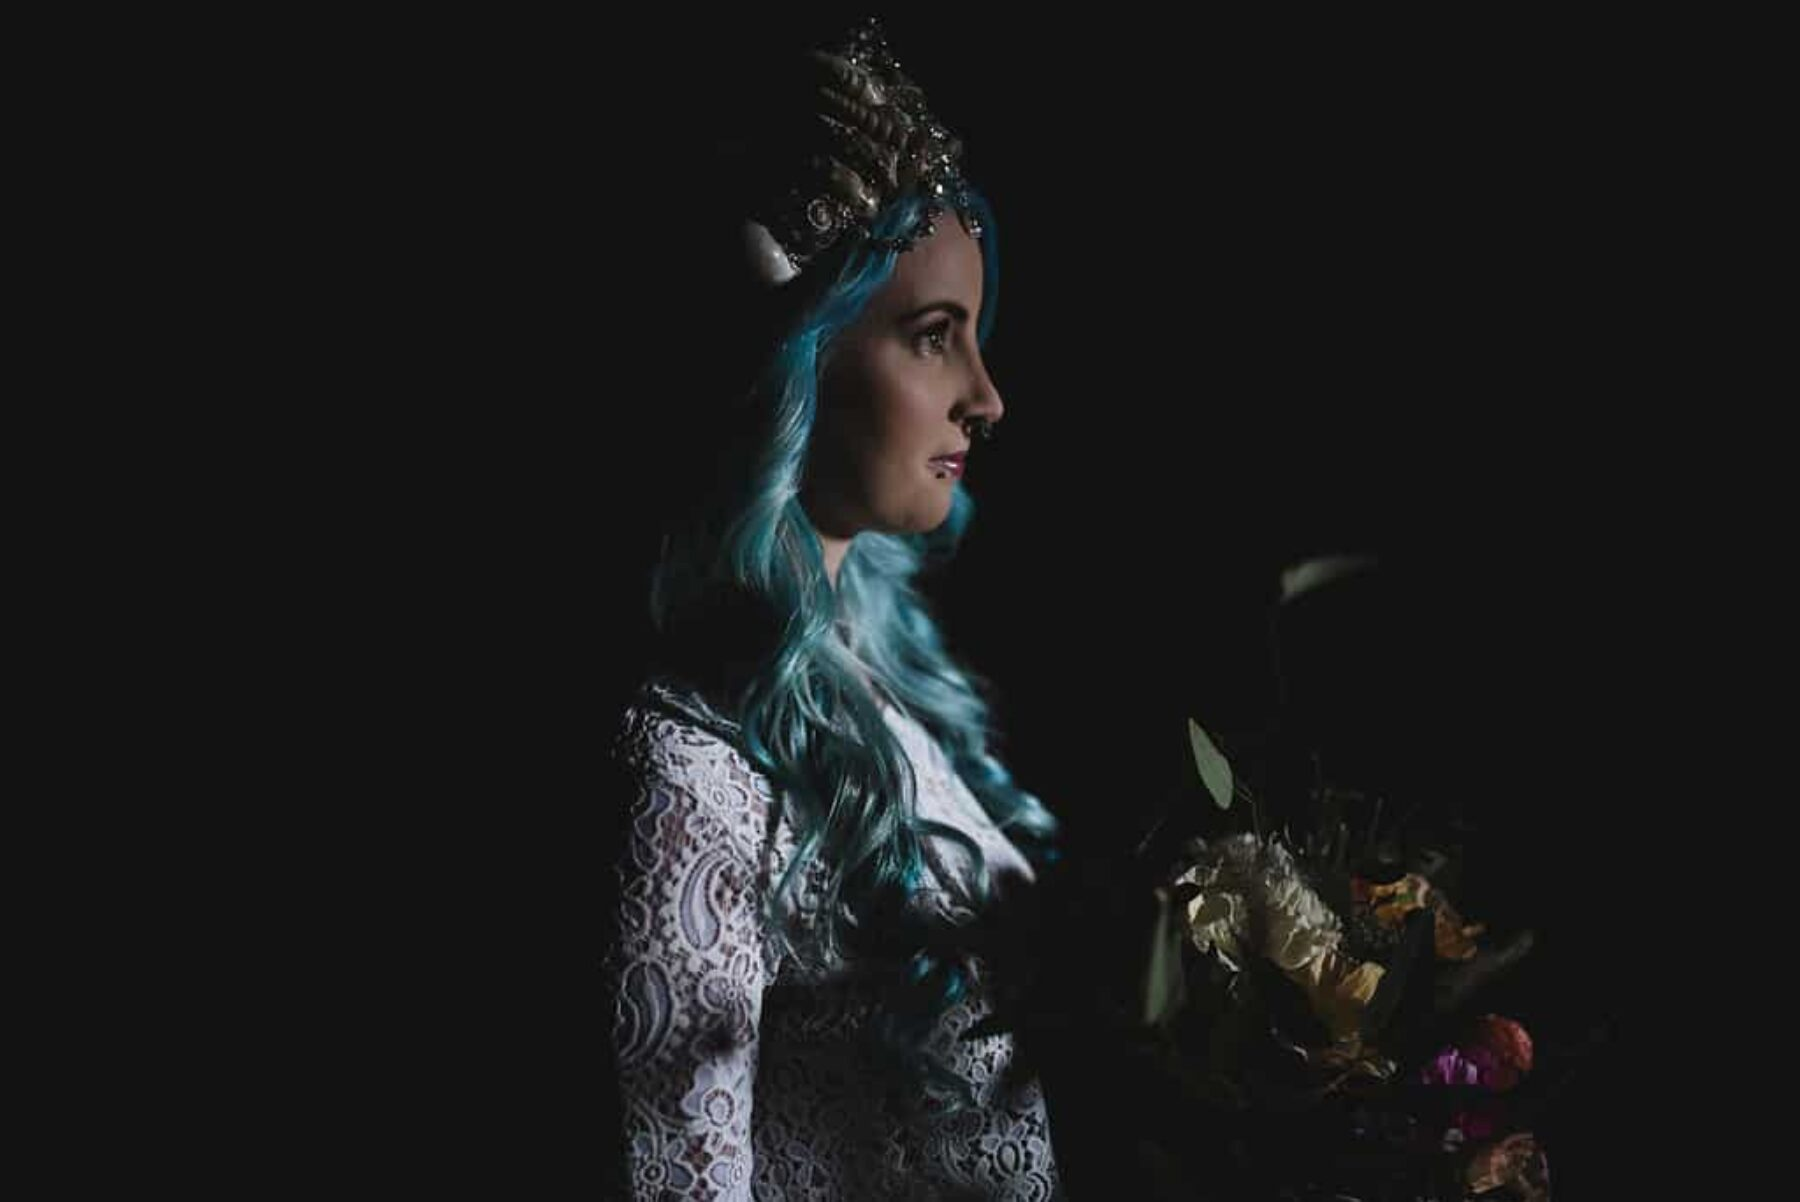 blue haired bride with mermaid crown